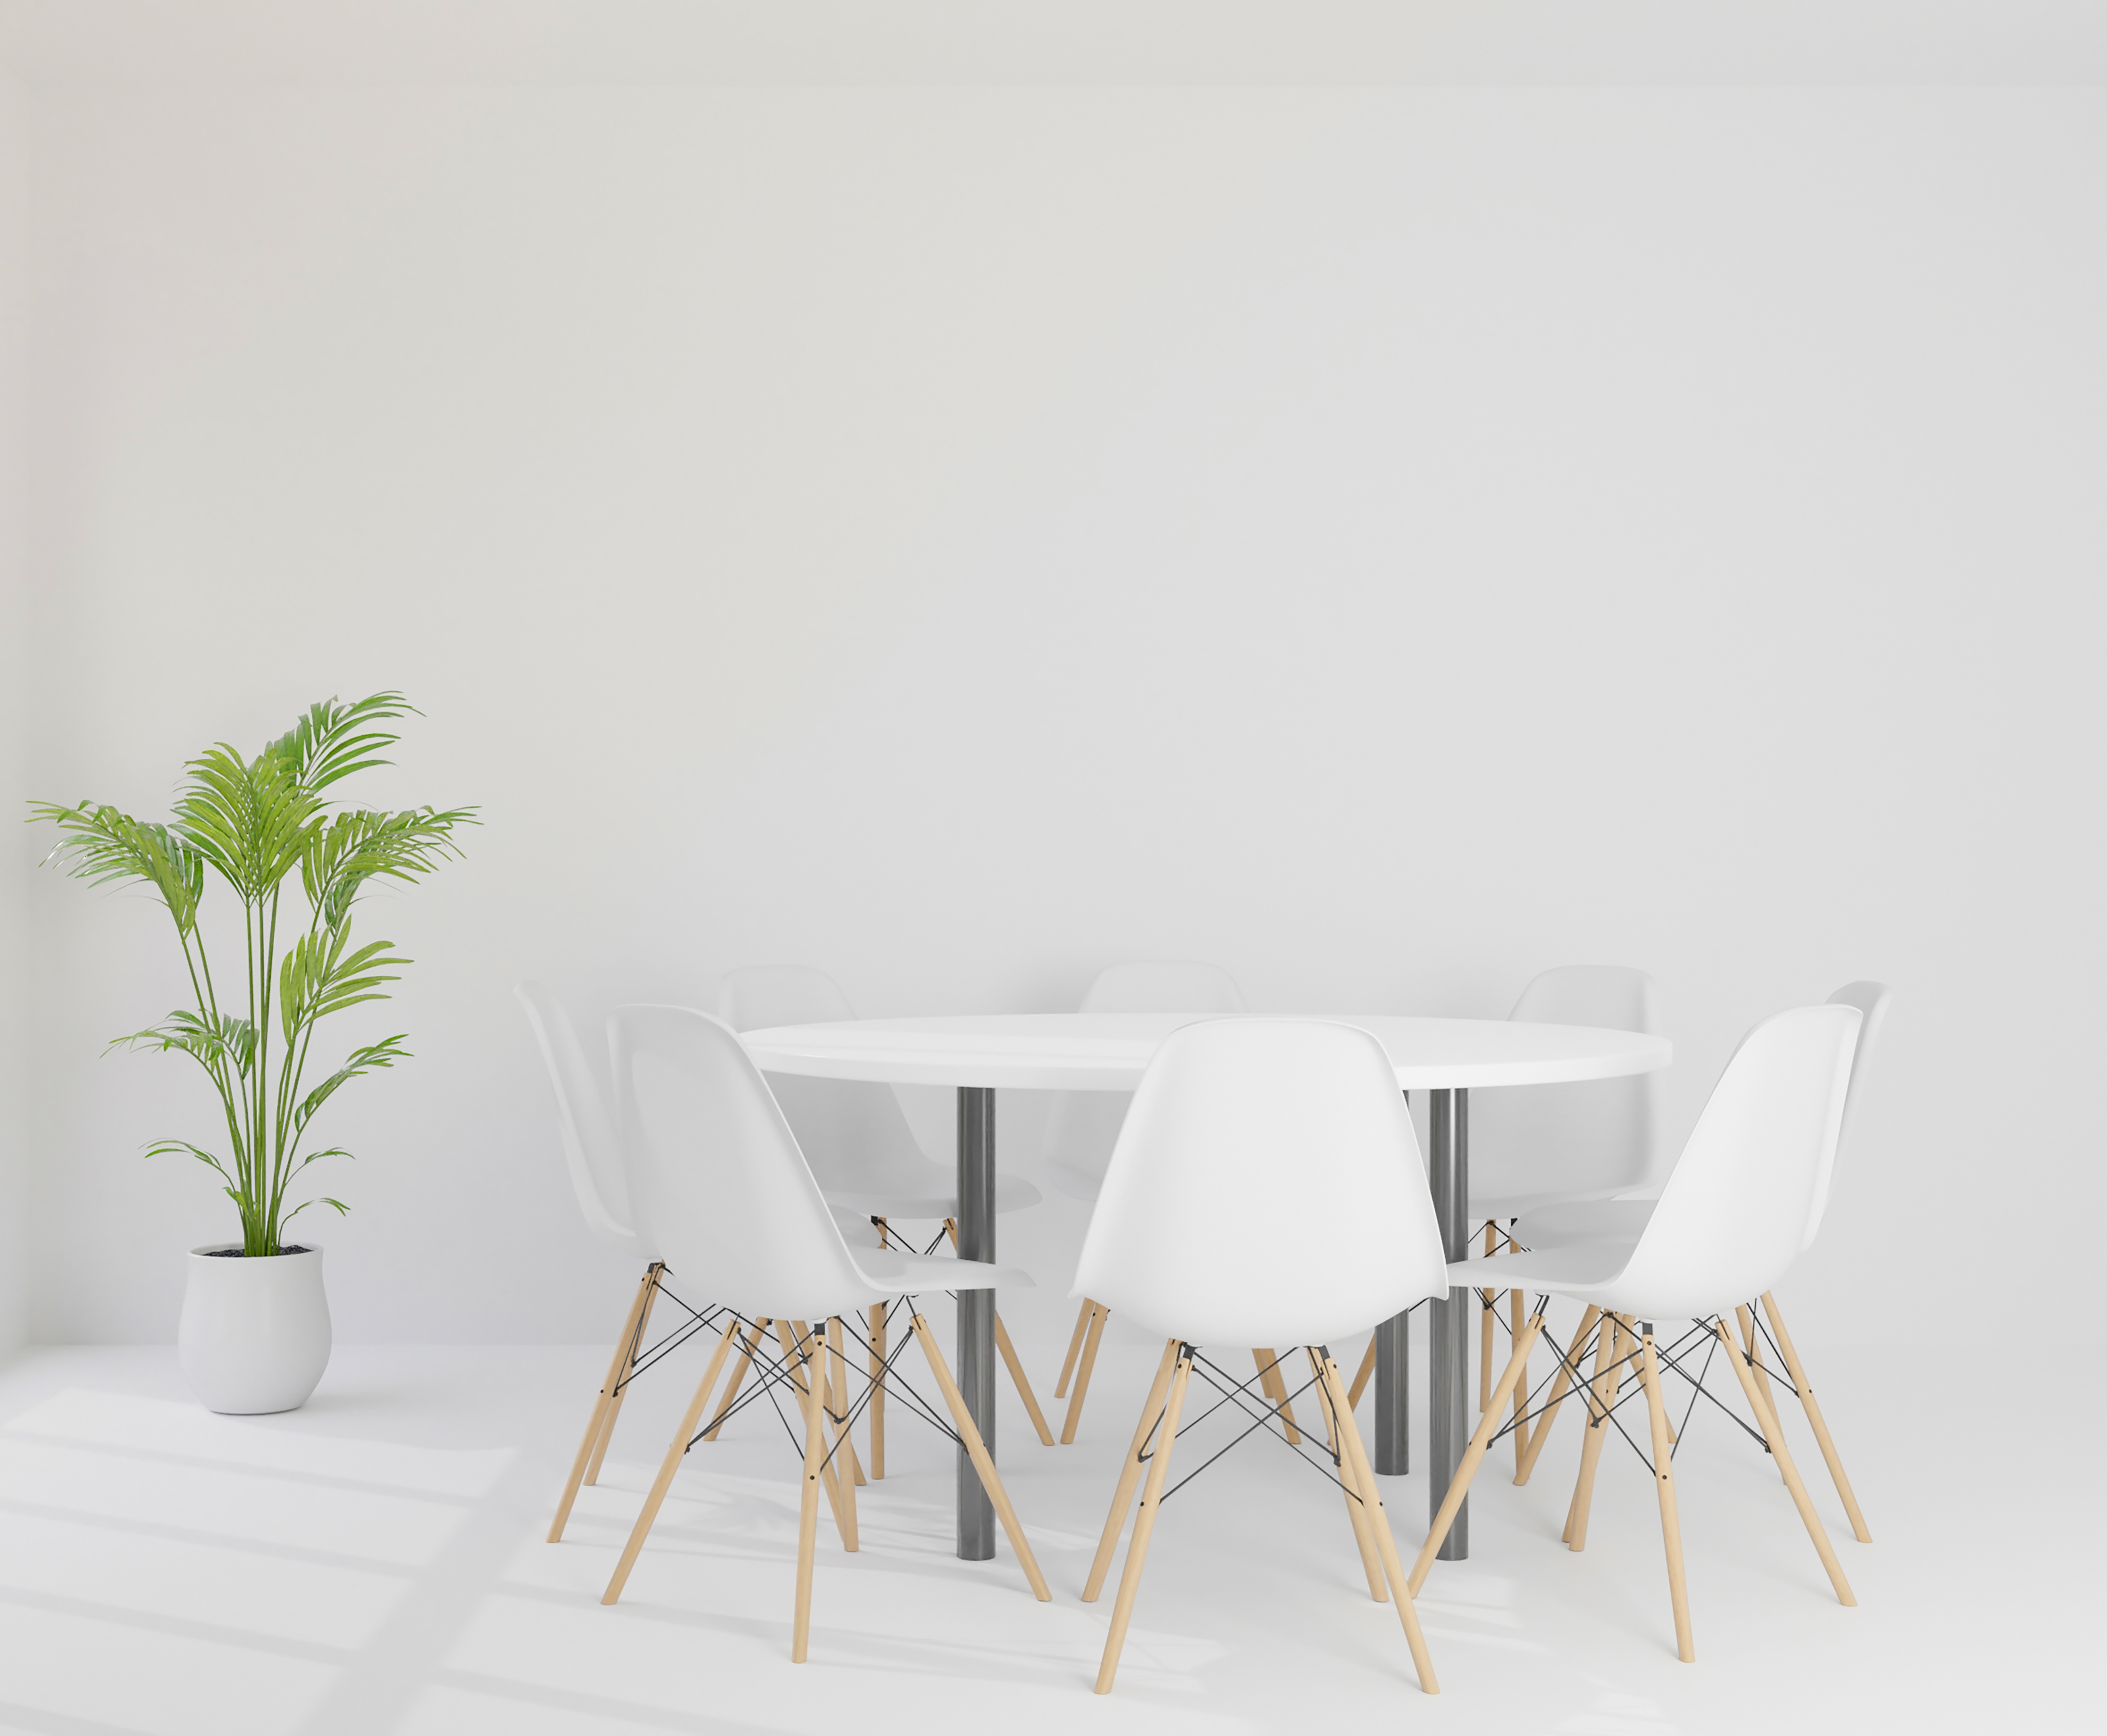 White meeting room with chairs